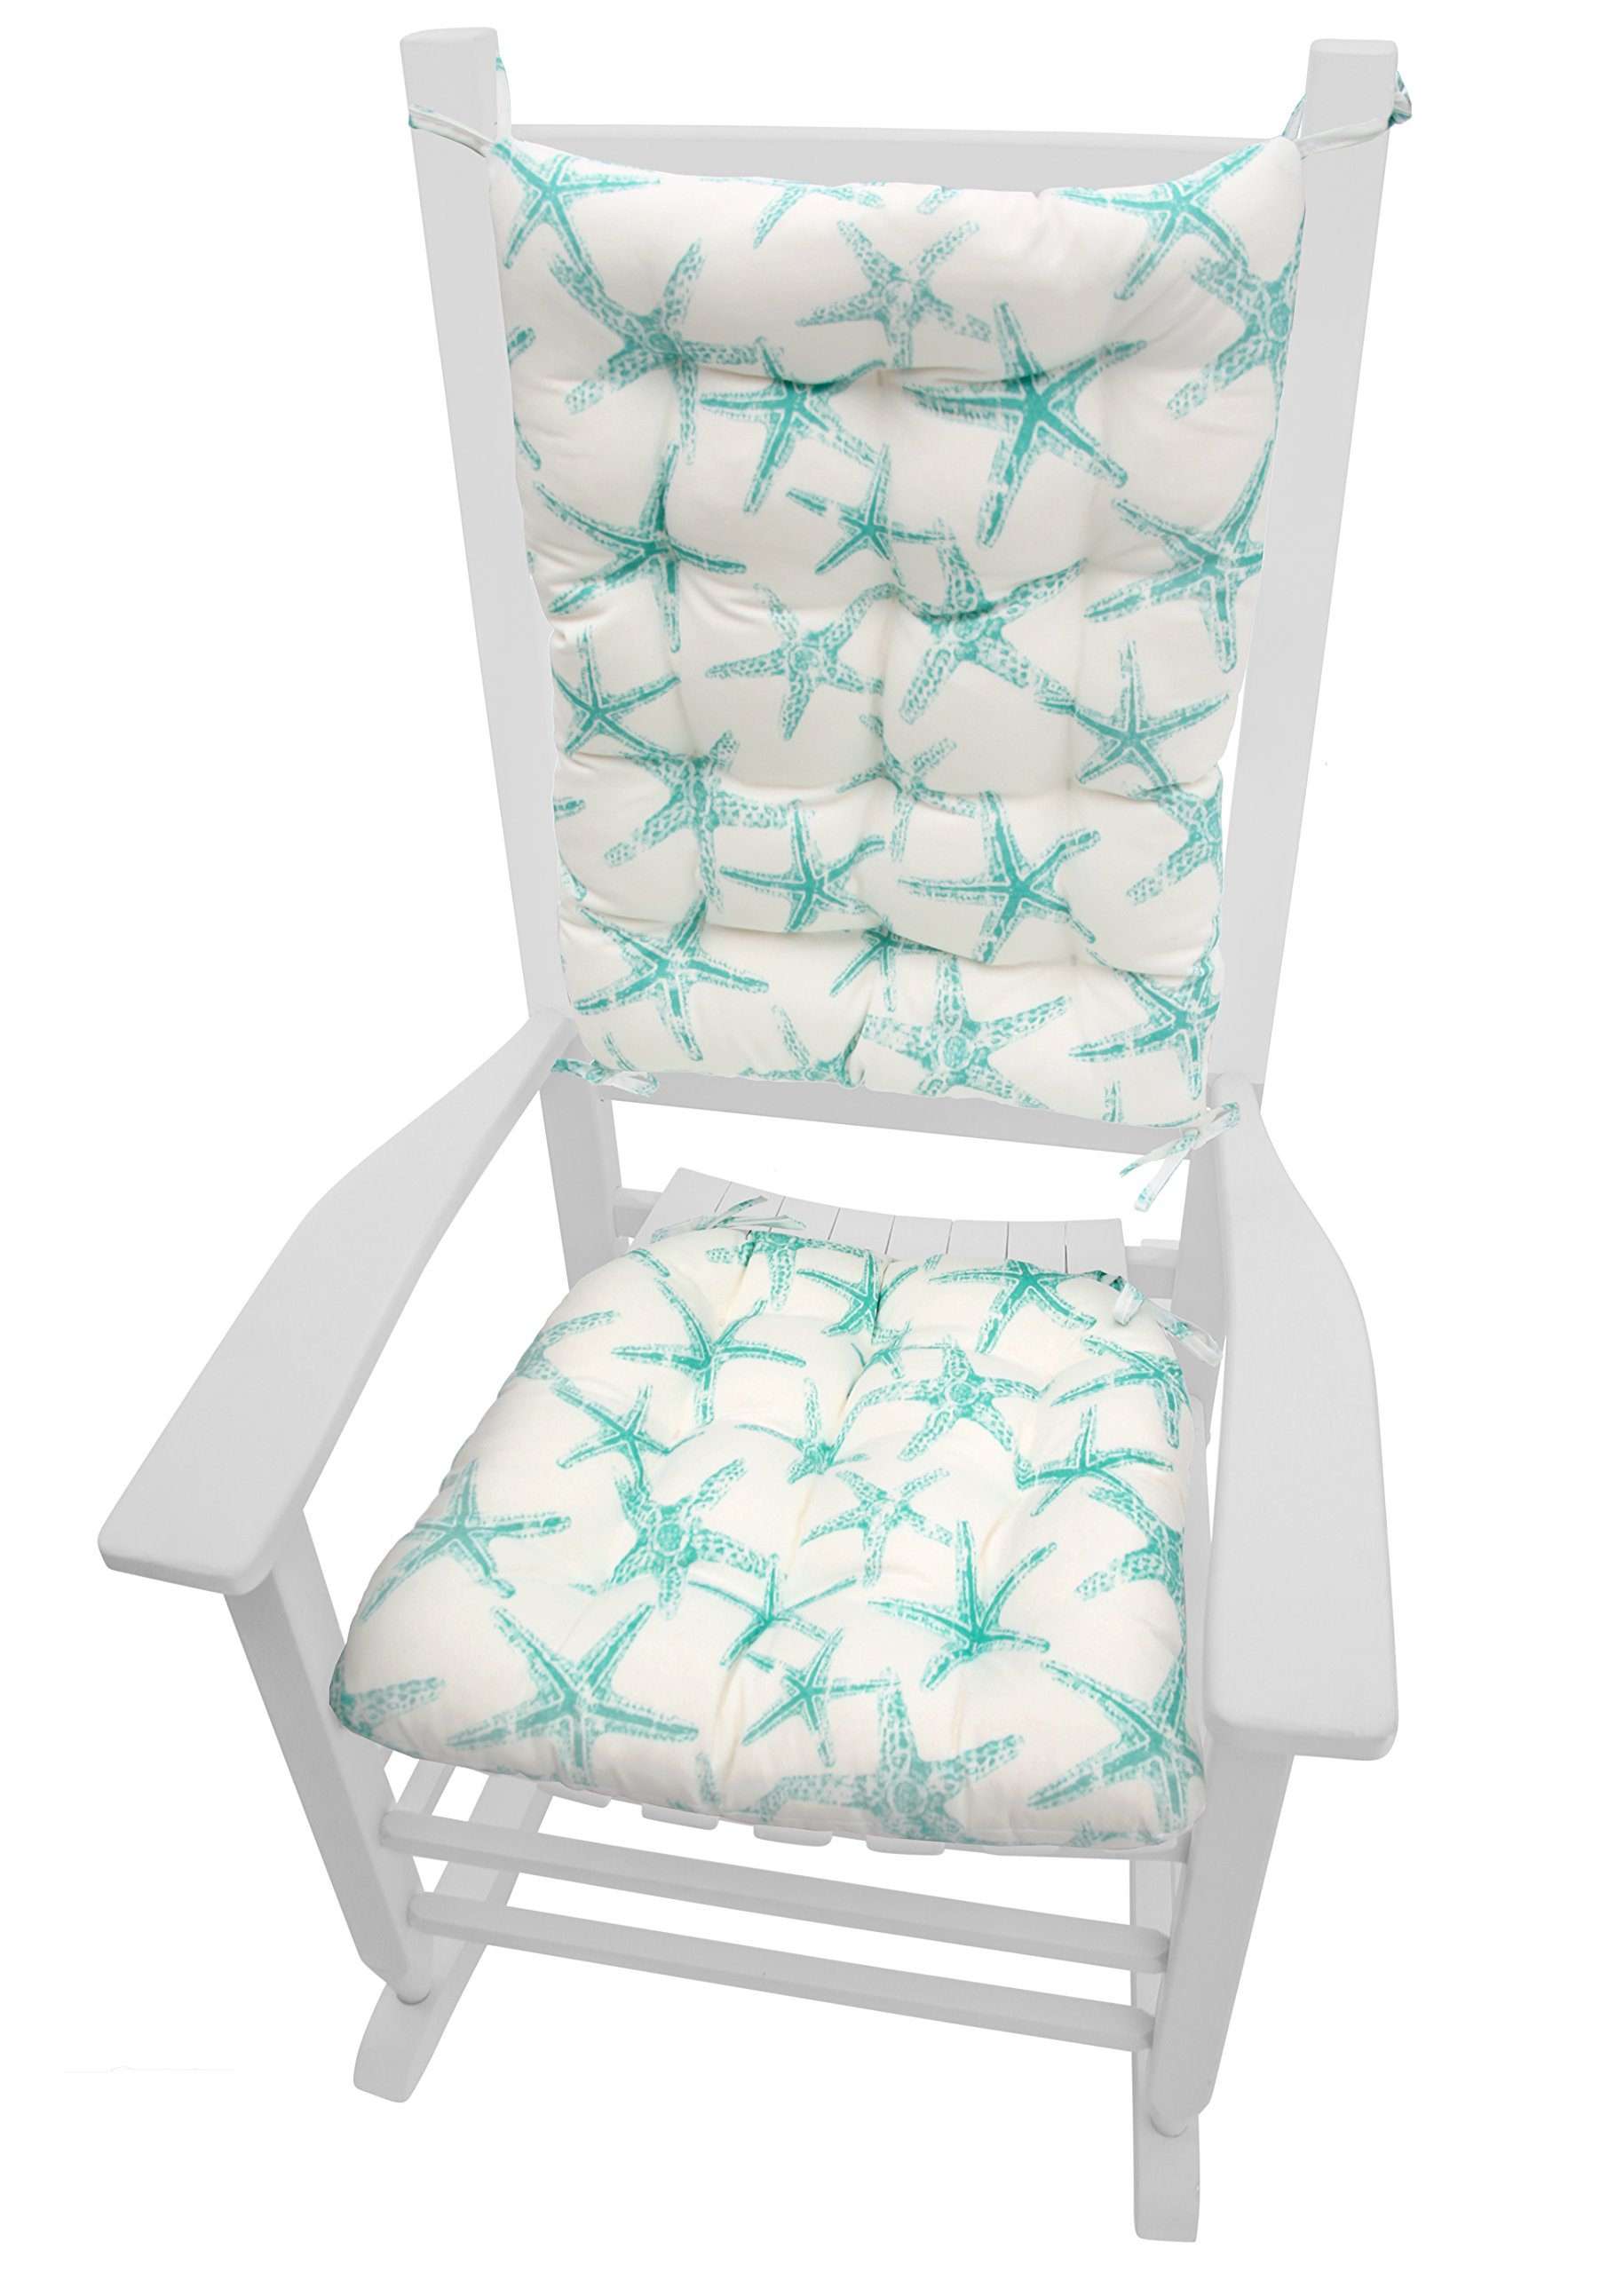 Barnett Products Sea Shore Starfish Aqua Porch Rocker Cushions - Size Extra-Large - Indoor/Outdoor: Fade Resistant, Mildew Resistant - Latex Foam Fill - Reversible, MADE IN USA (Teal/White Star Fish)